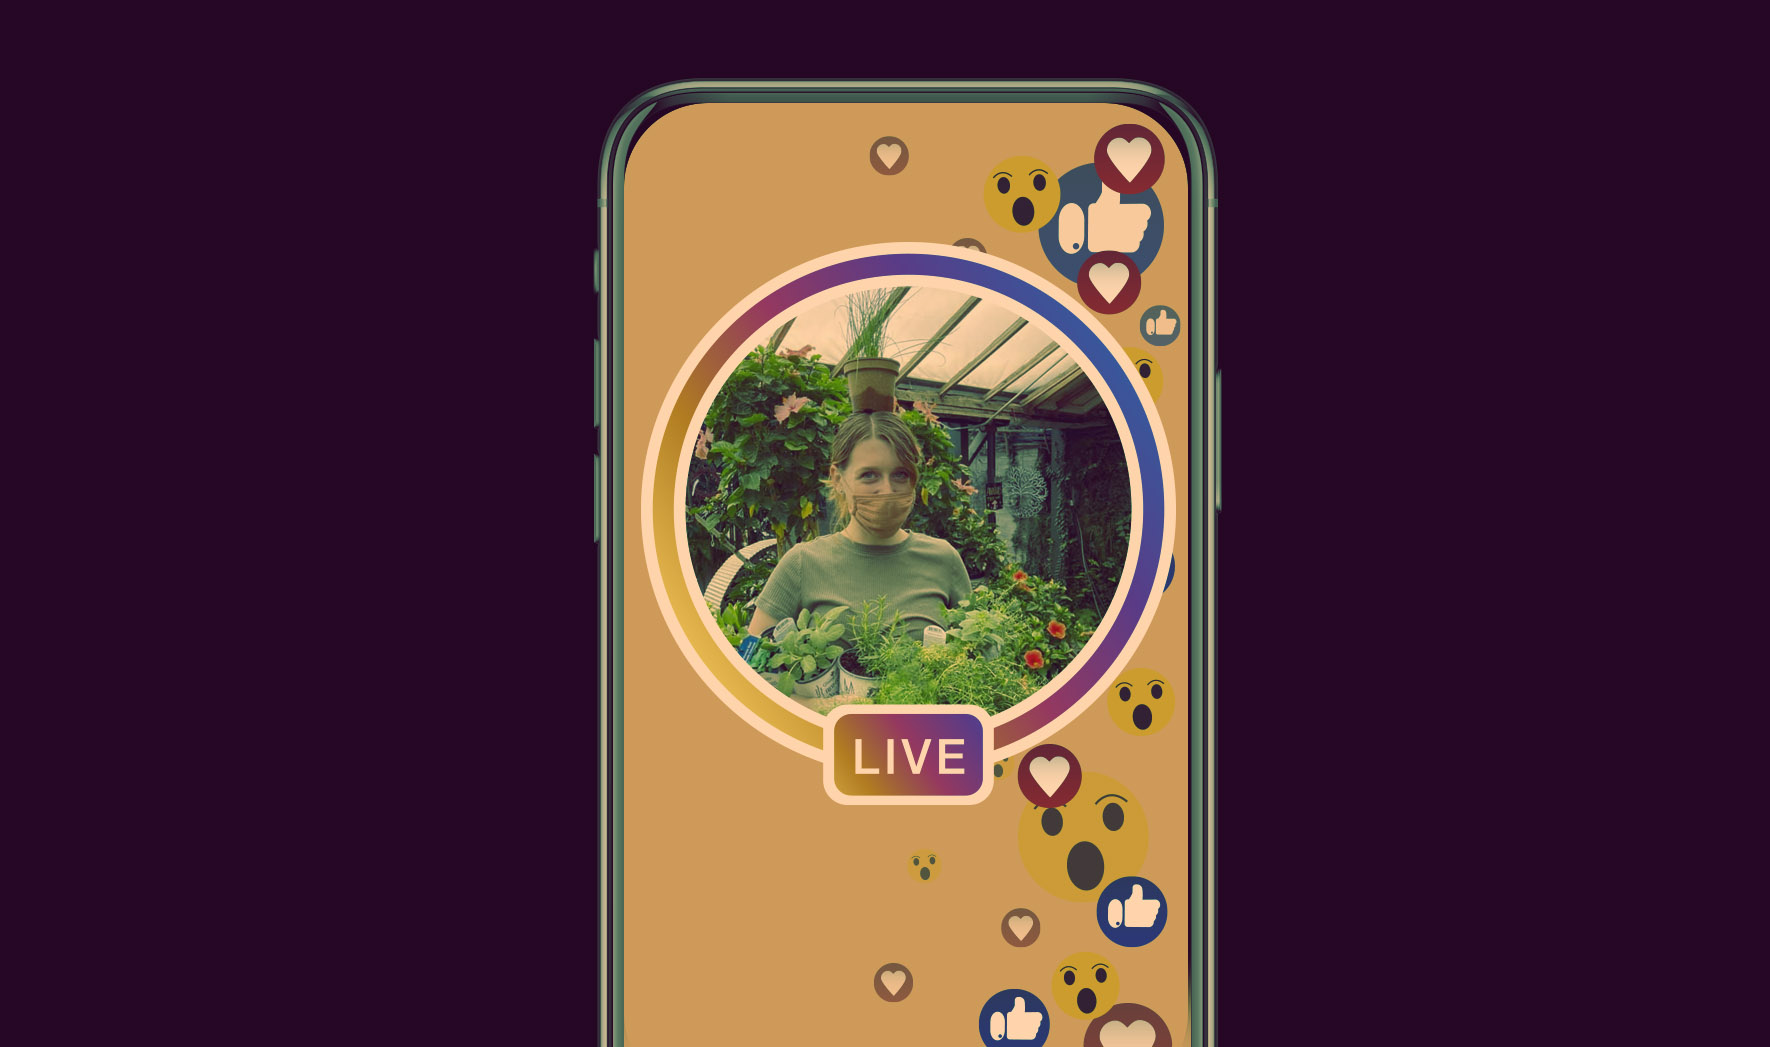 Go Live on Instagram With These 4 Tips